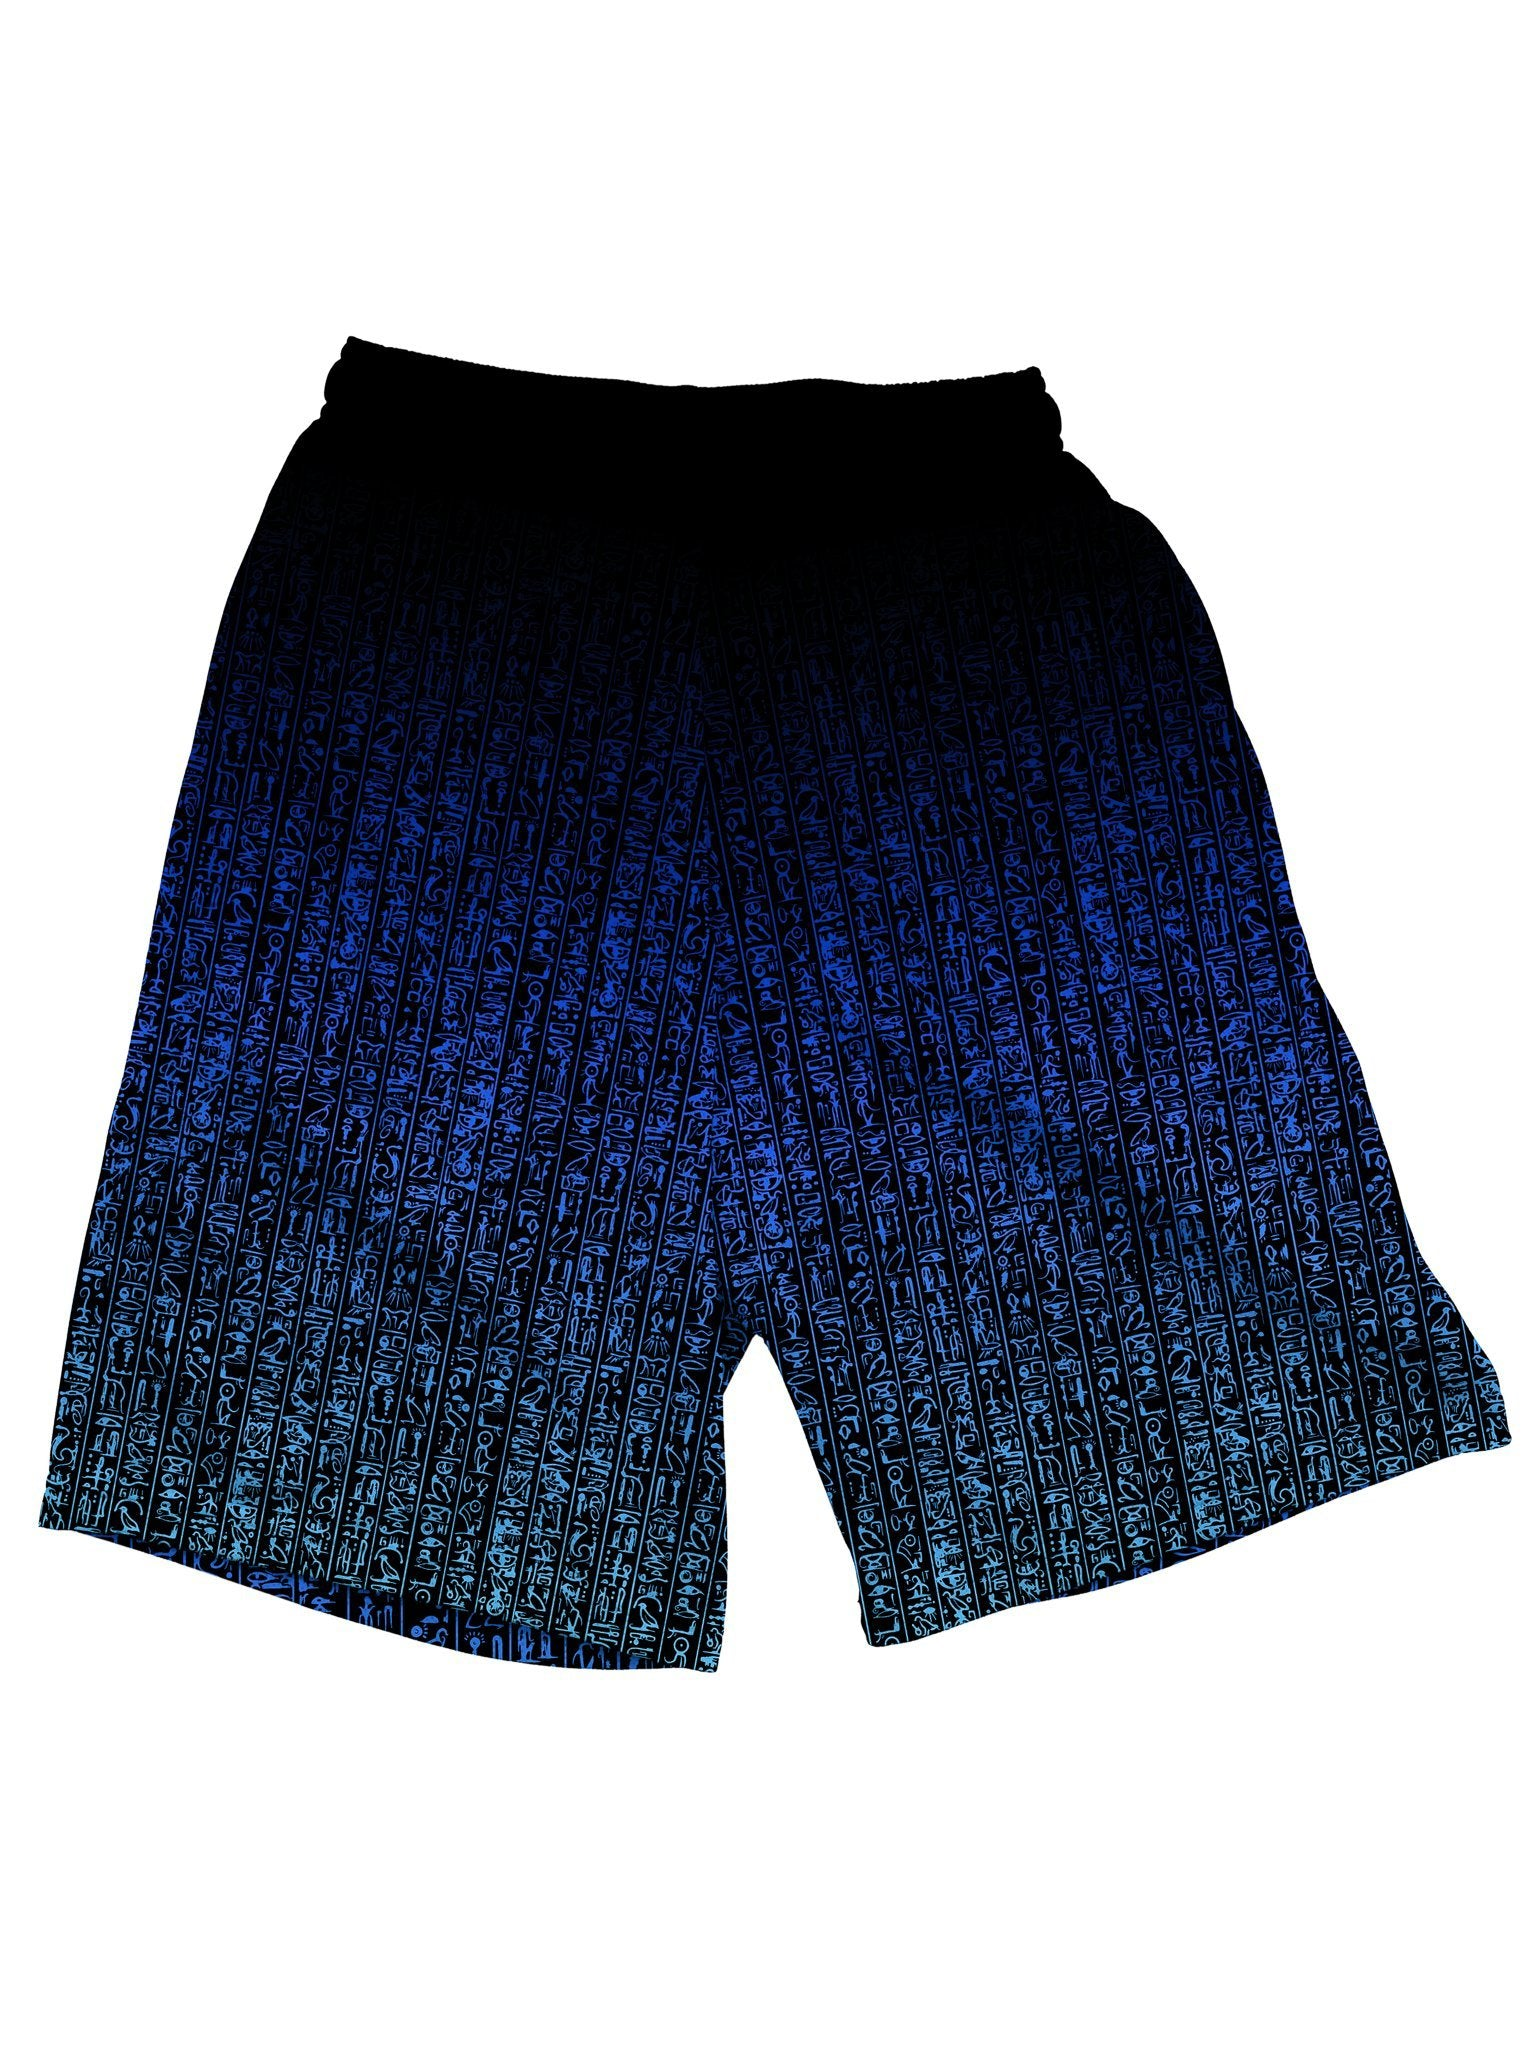 Egyptian Glyphs (Blue) Shorts Mens Shorts Electro Threads